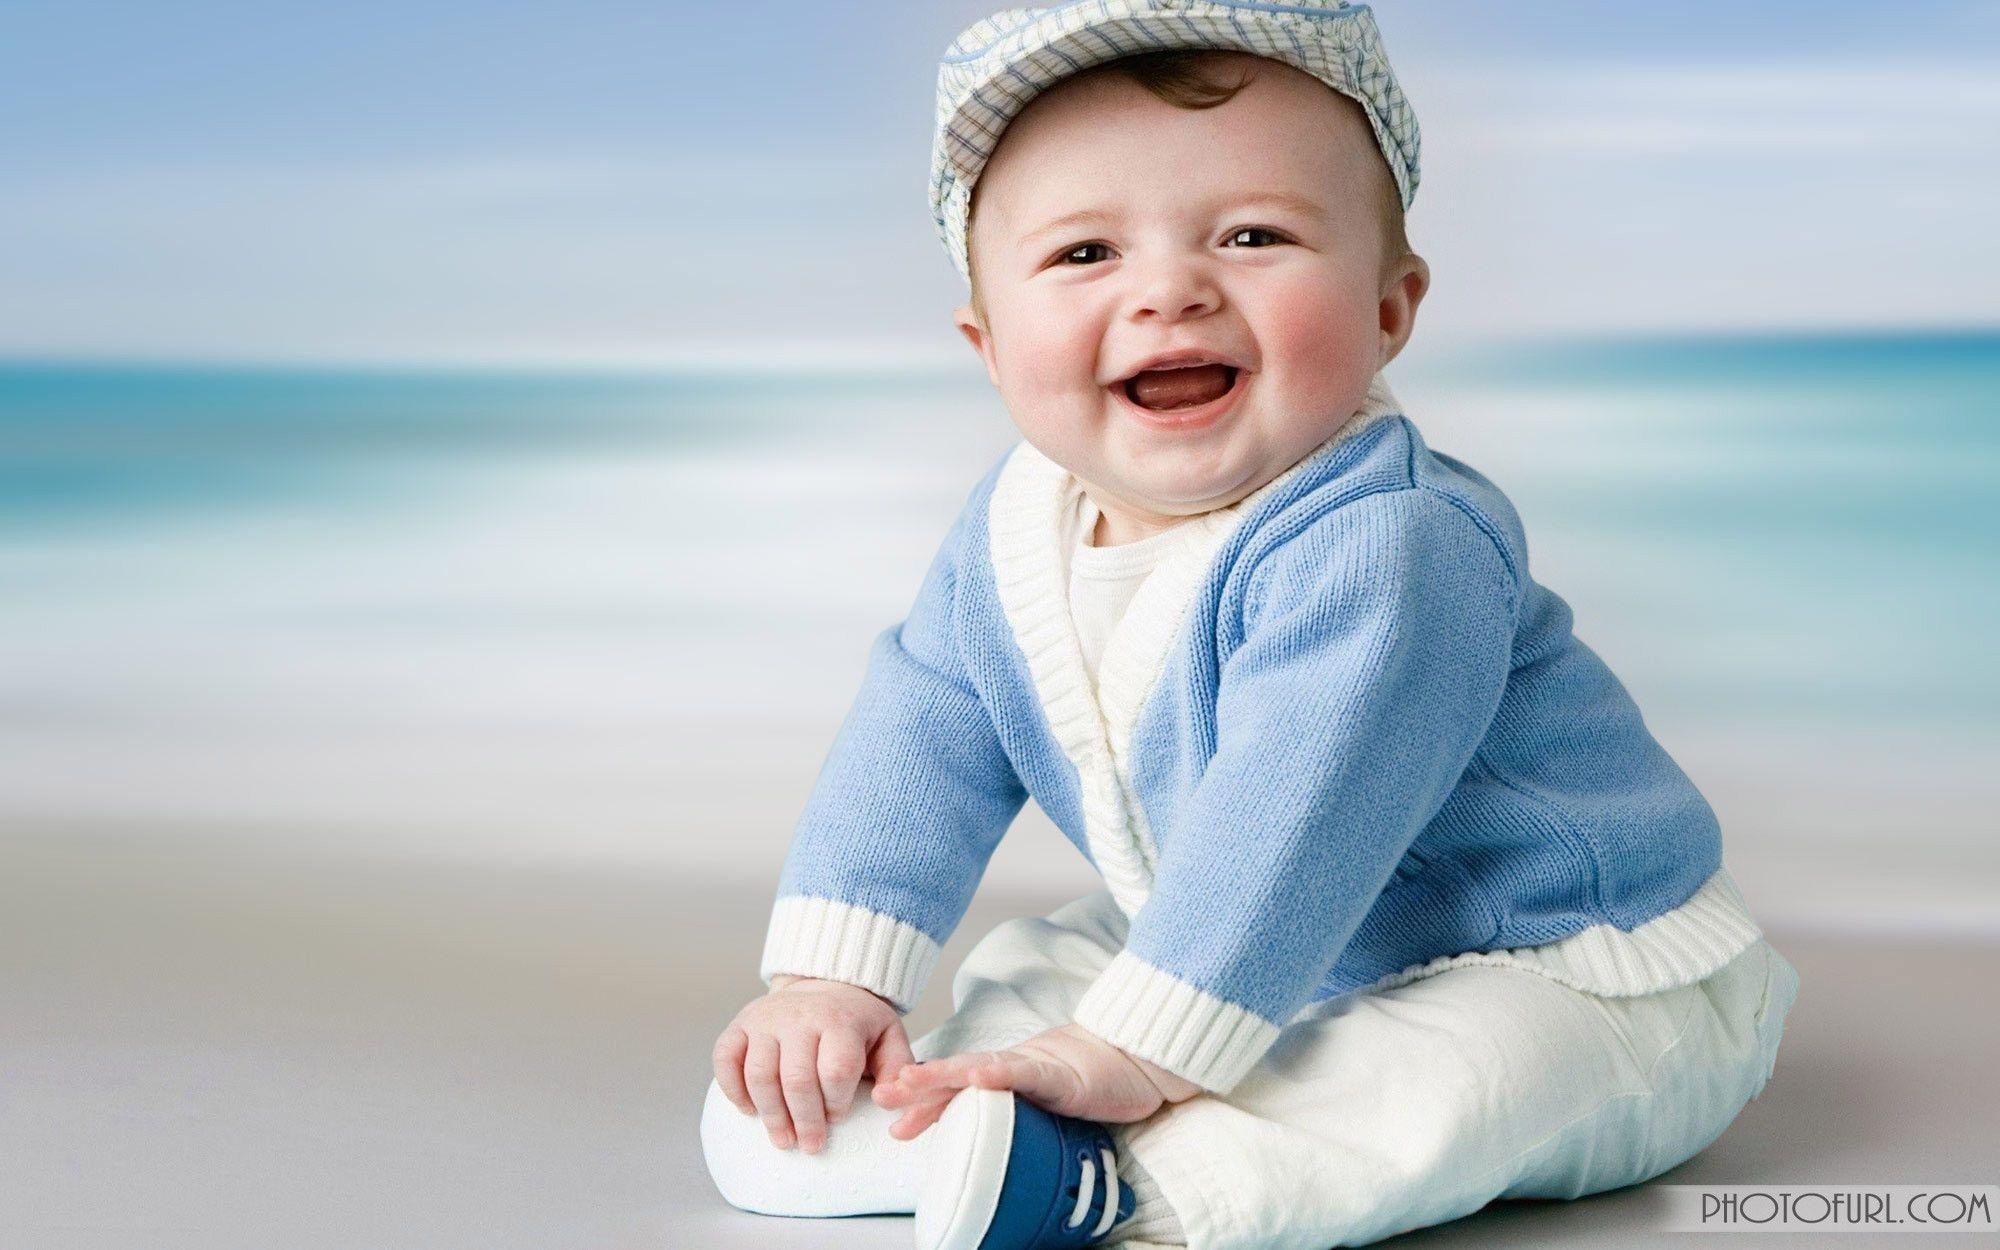 Babies Wallpapers For Laptop: Cute Wallpapers For Laptop